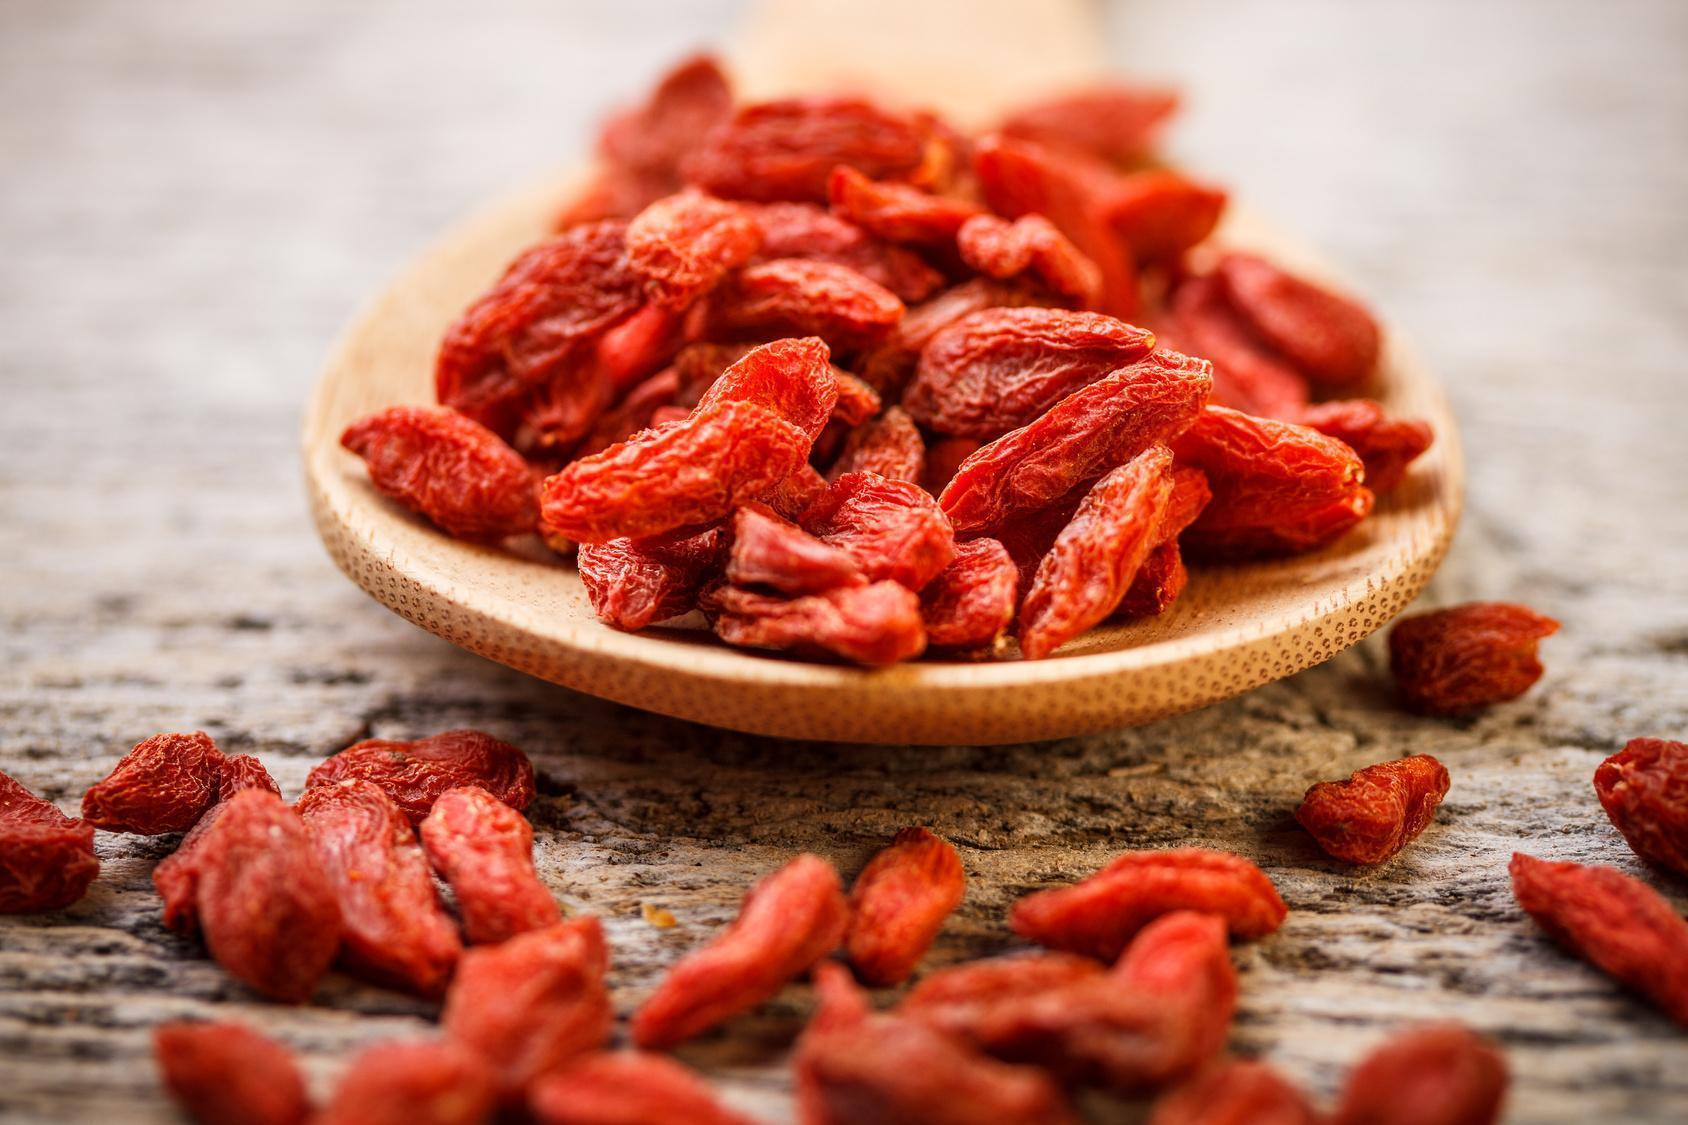 Contraindicações do Goji Berries